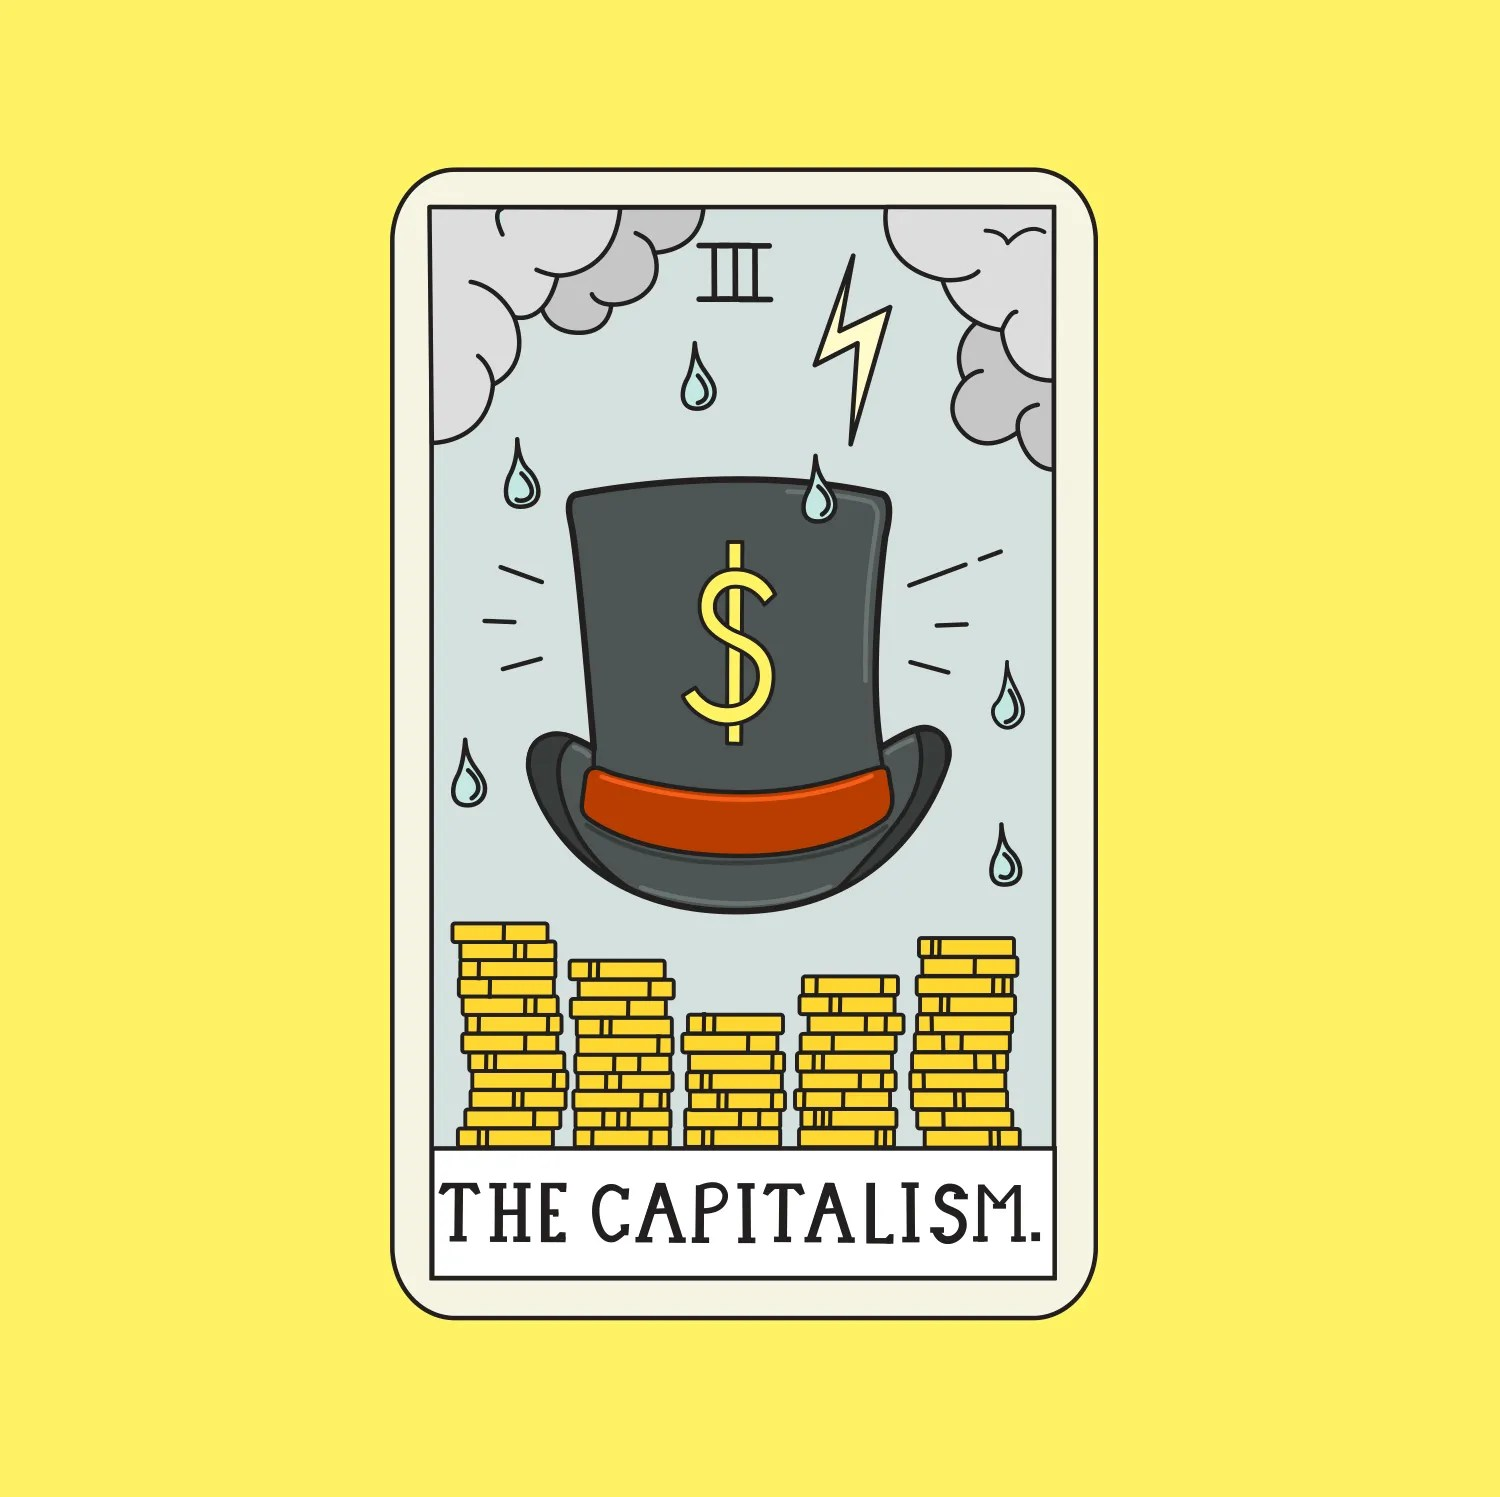 What Capitalism Is And How It Affects People